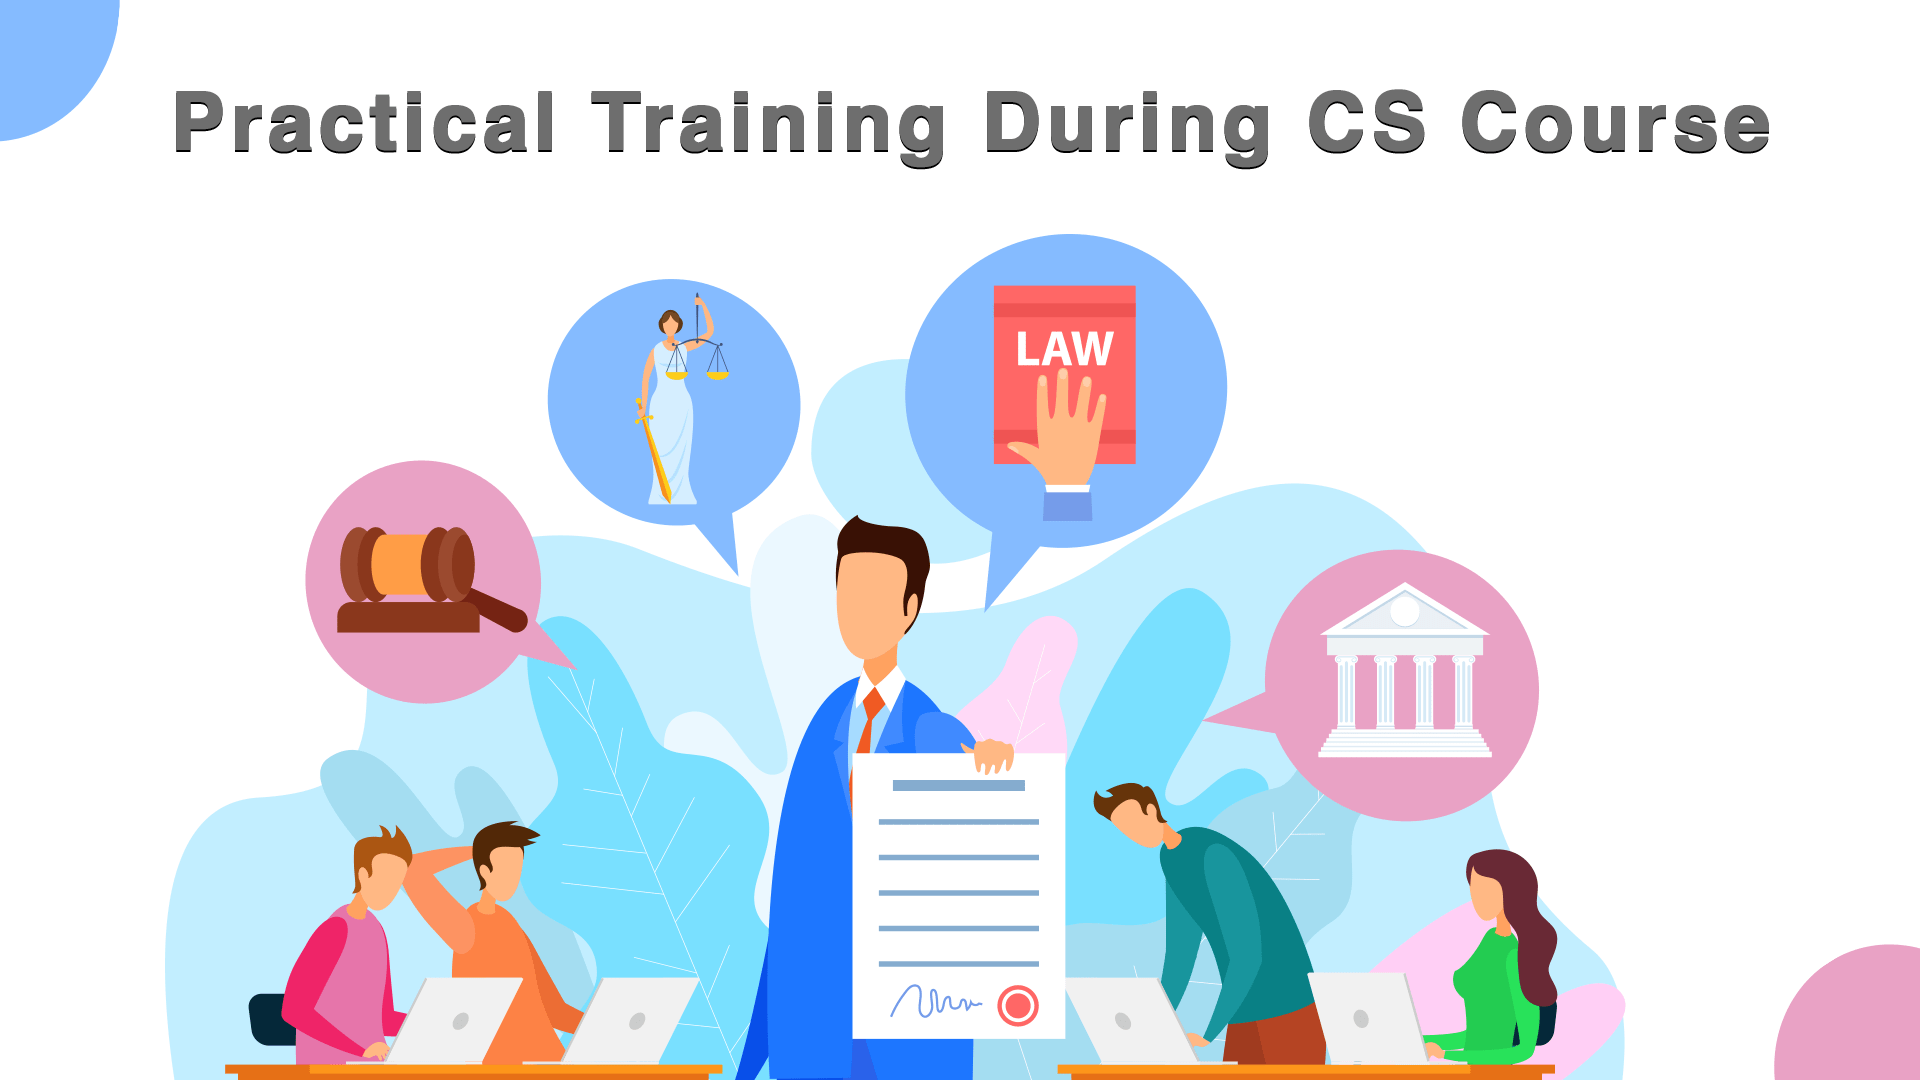 Practical Training During the CS Course